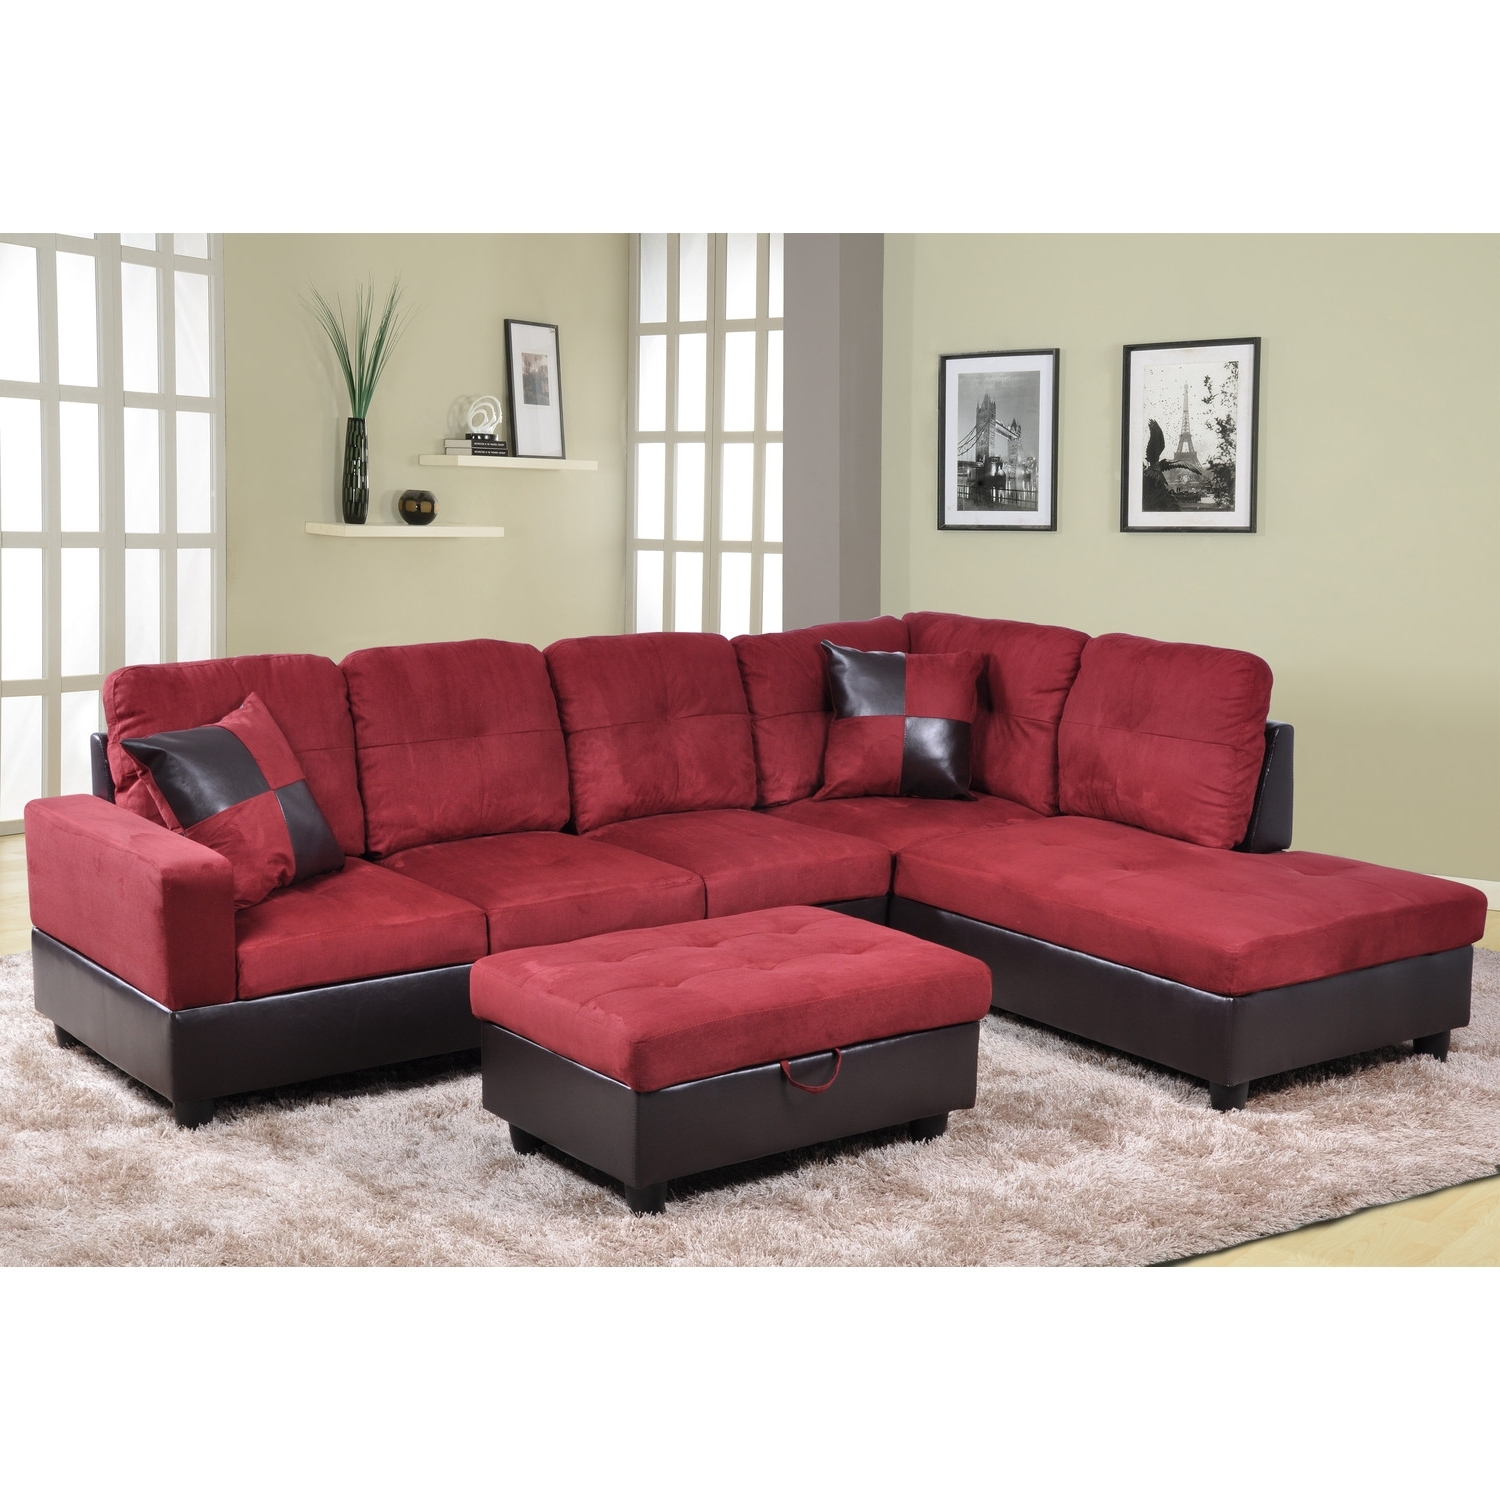 Favorite Nice Cheap Sofas For Sale About Furniture Sophisticated Designs Of With Sectional Sofas Under  (View 6 of 15)